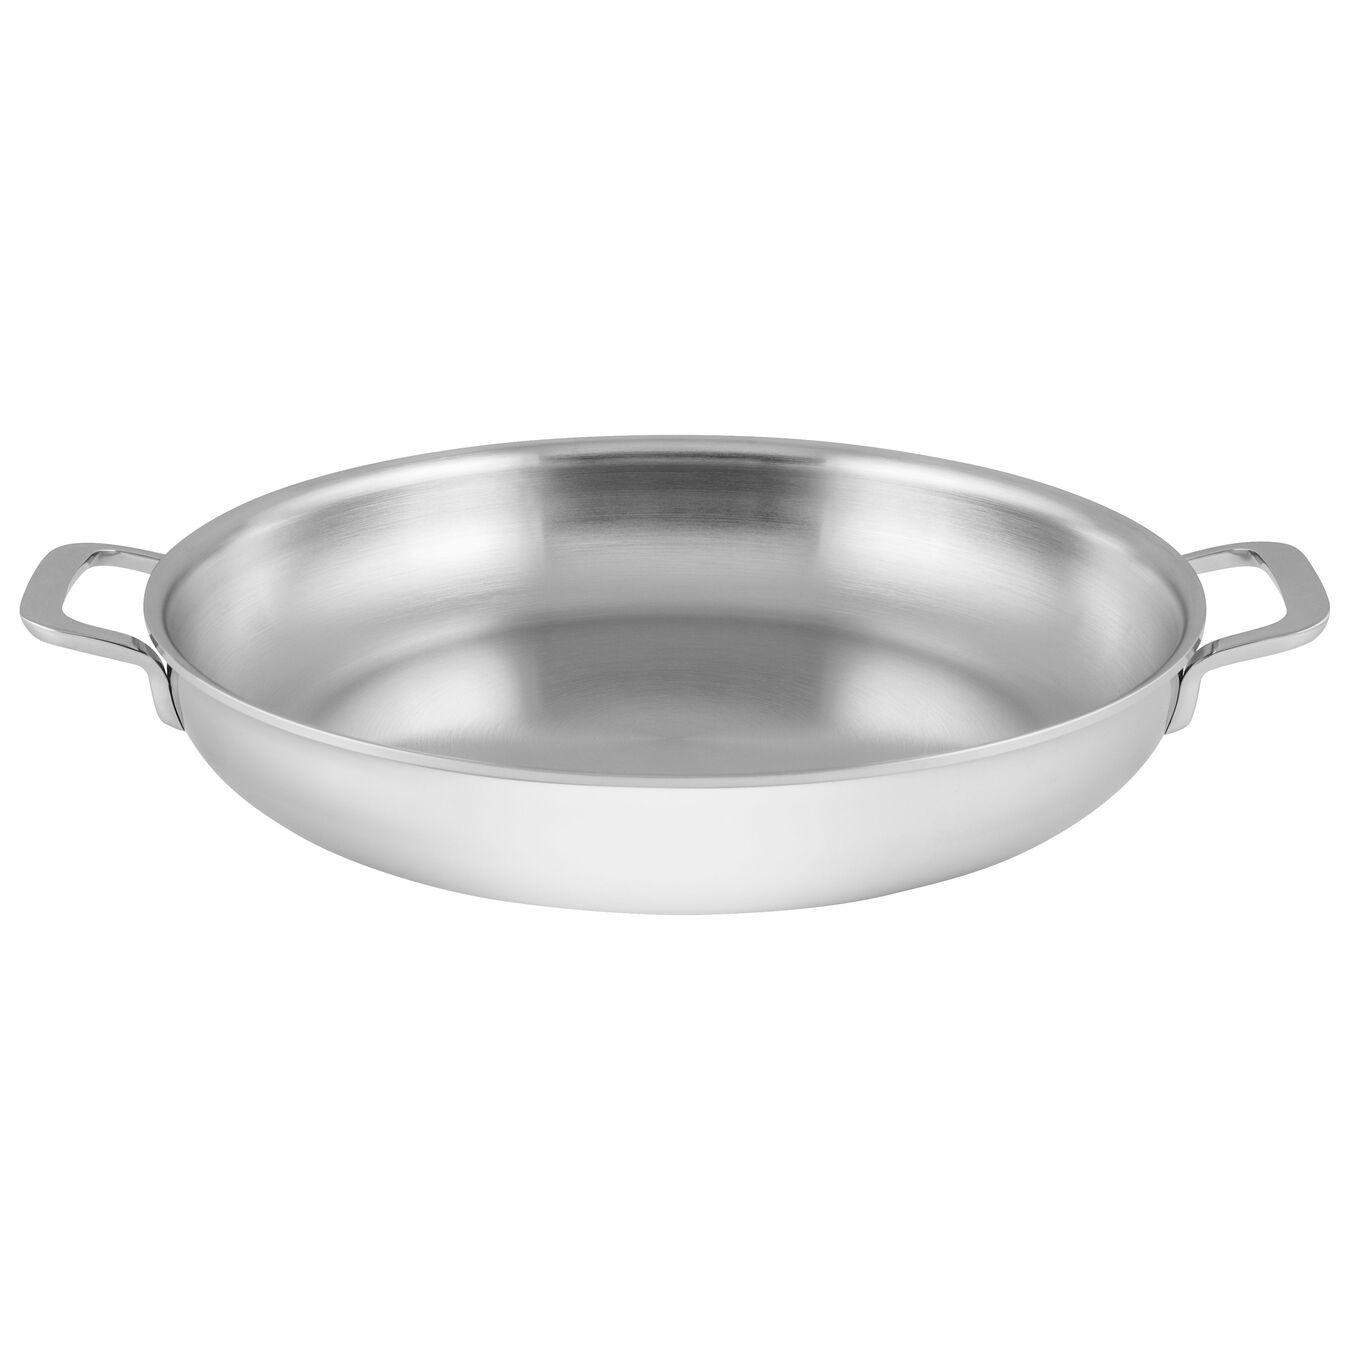 18/10 Stainless Steel Sauteuse, Silver,,large 1